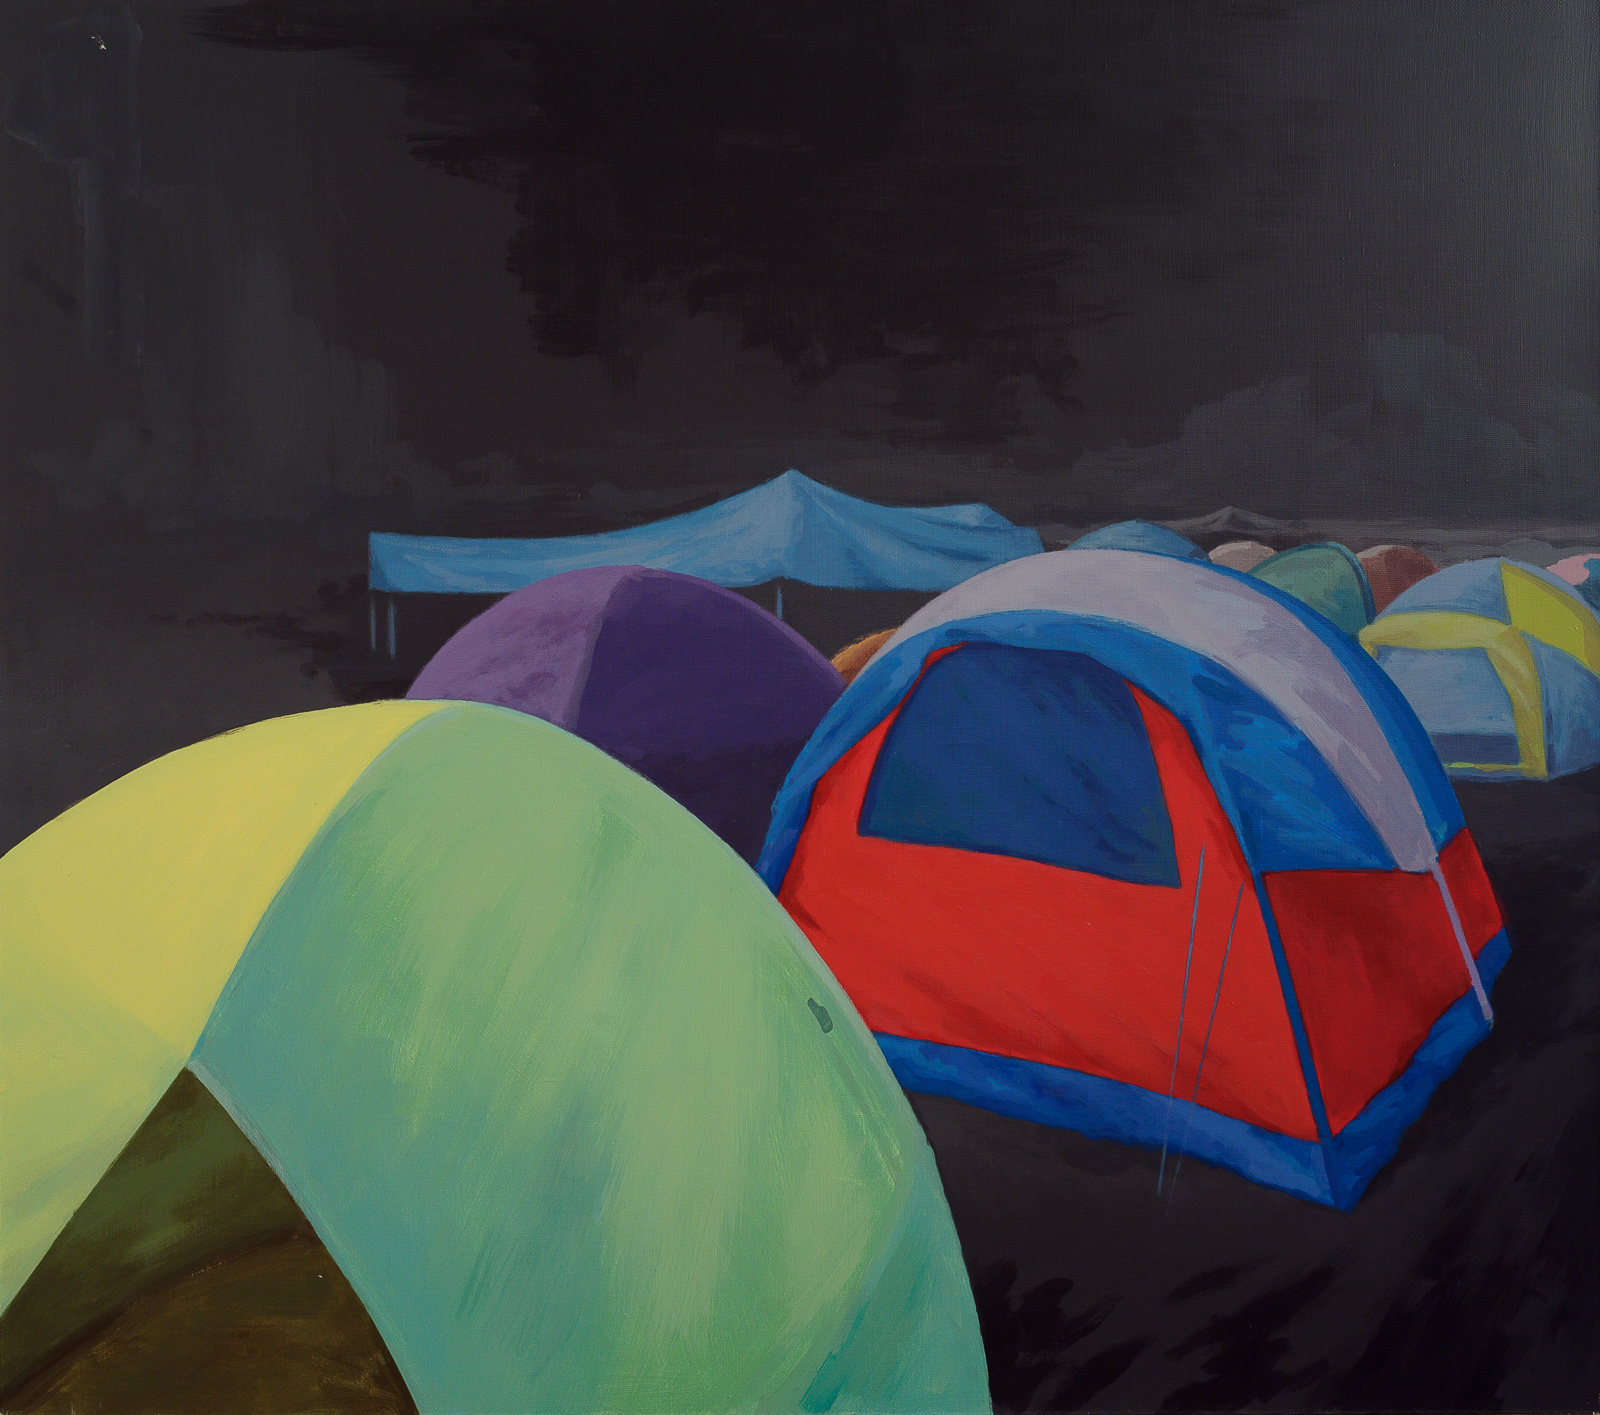 Stas Shuripa, Tent-city, acrylic on canvas (2012)